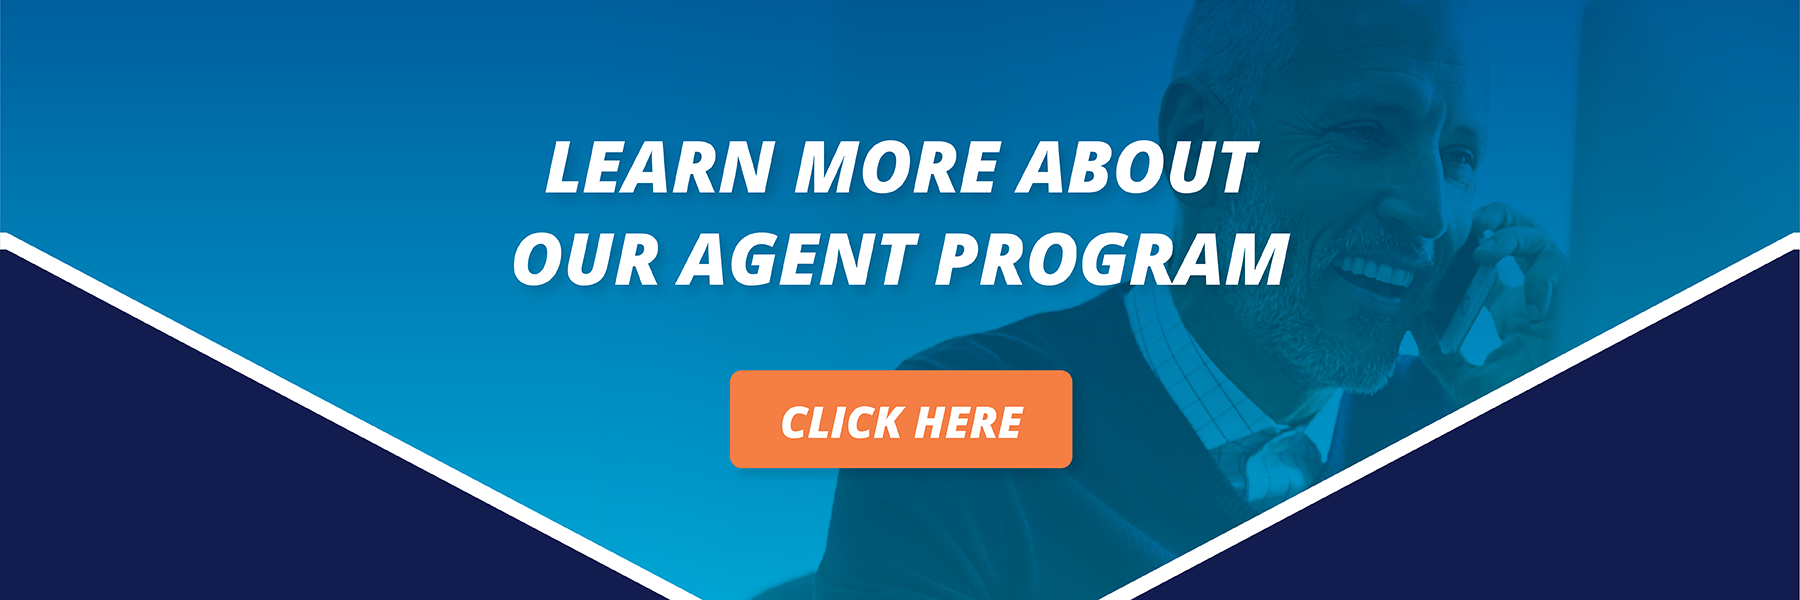 Learn More About our Agent Program